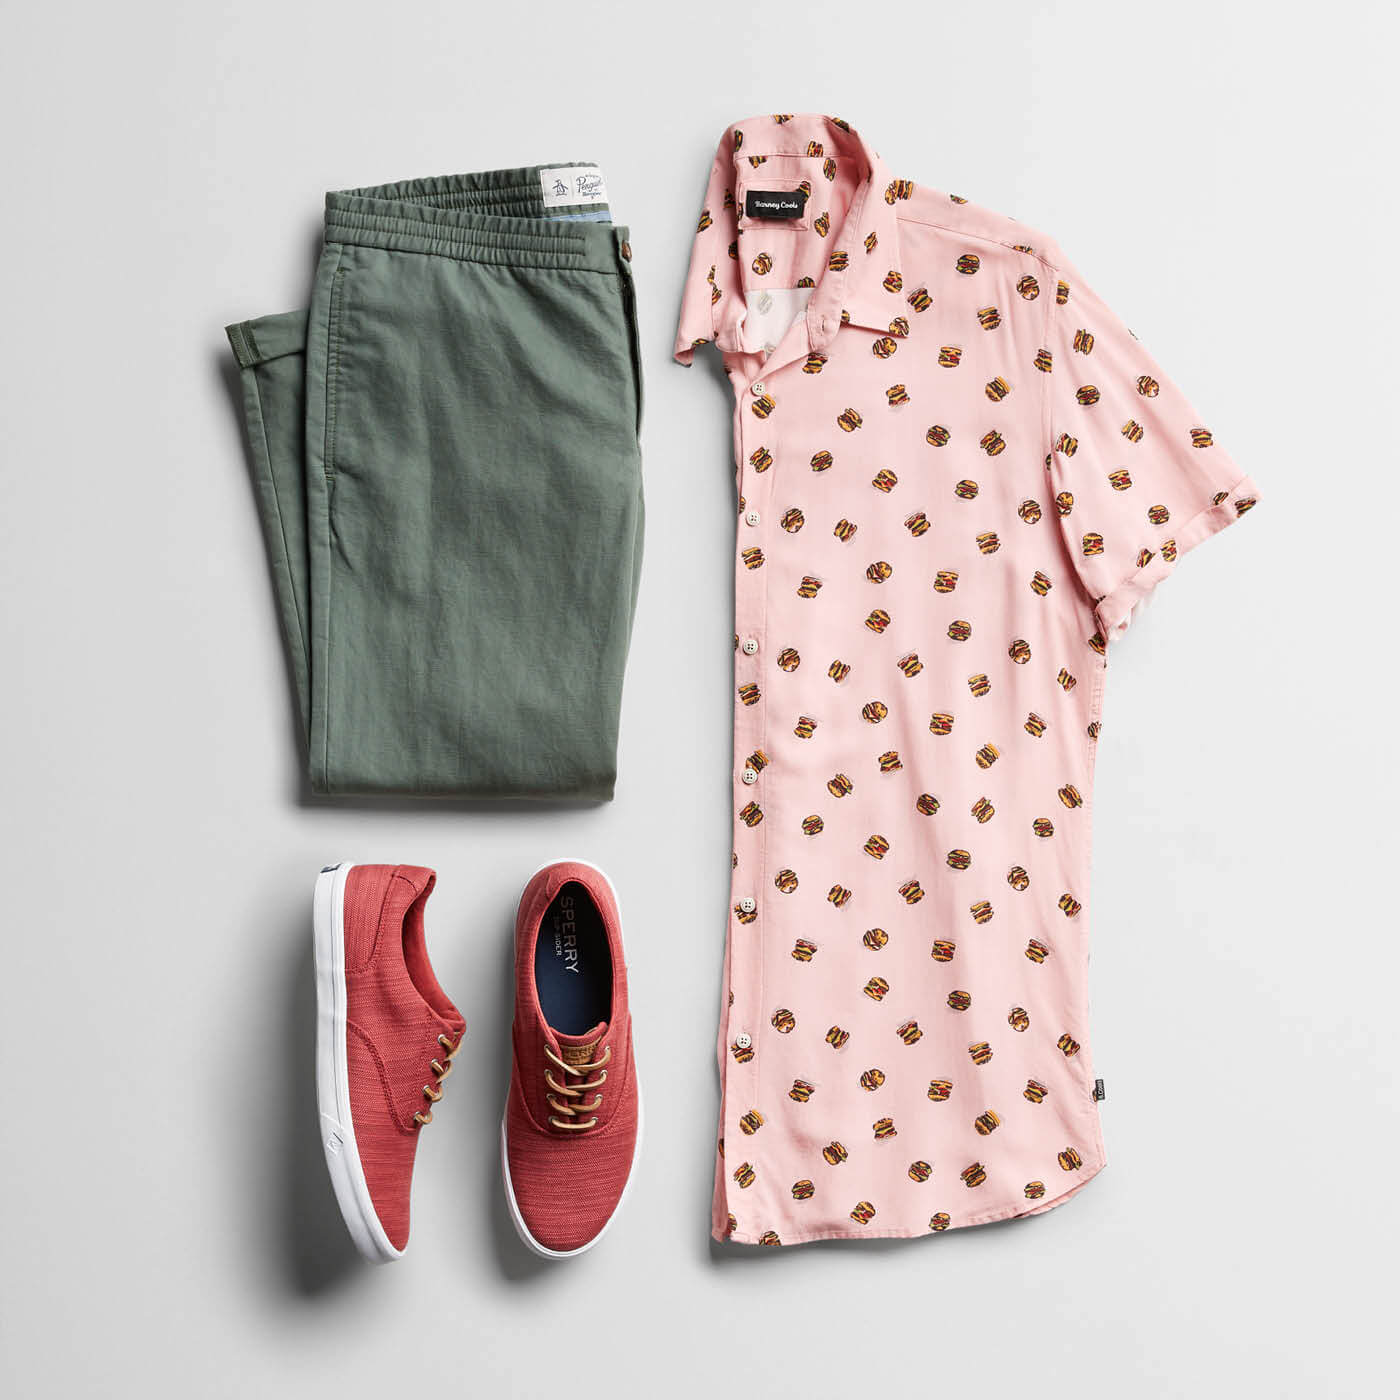 pink printed shirt and green chinos